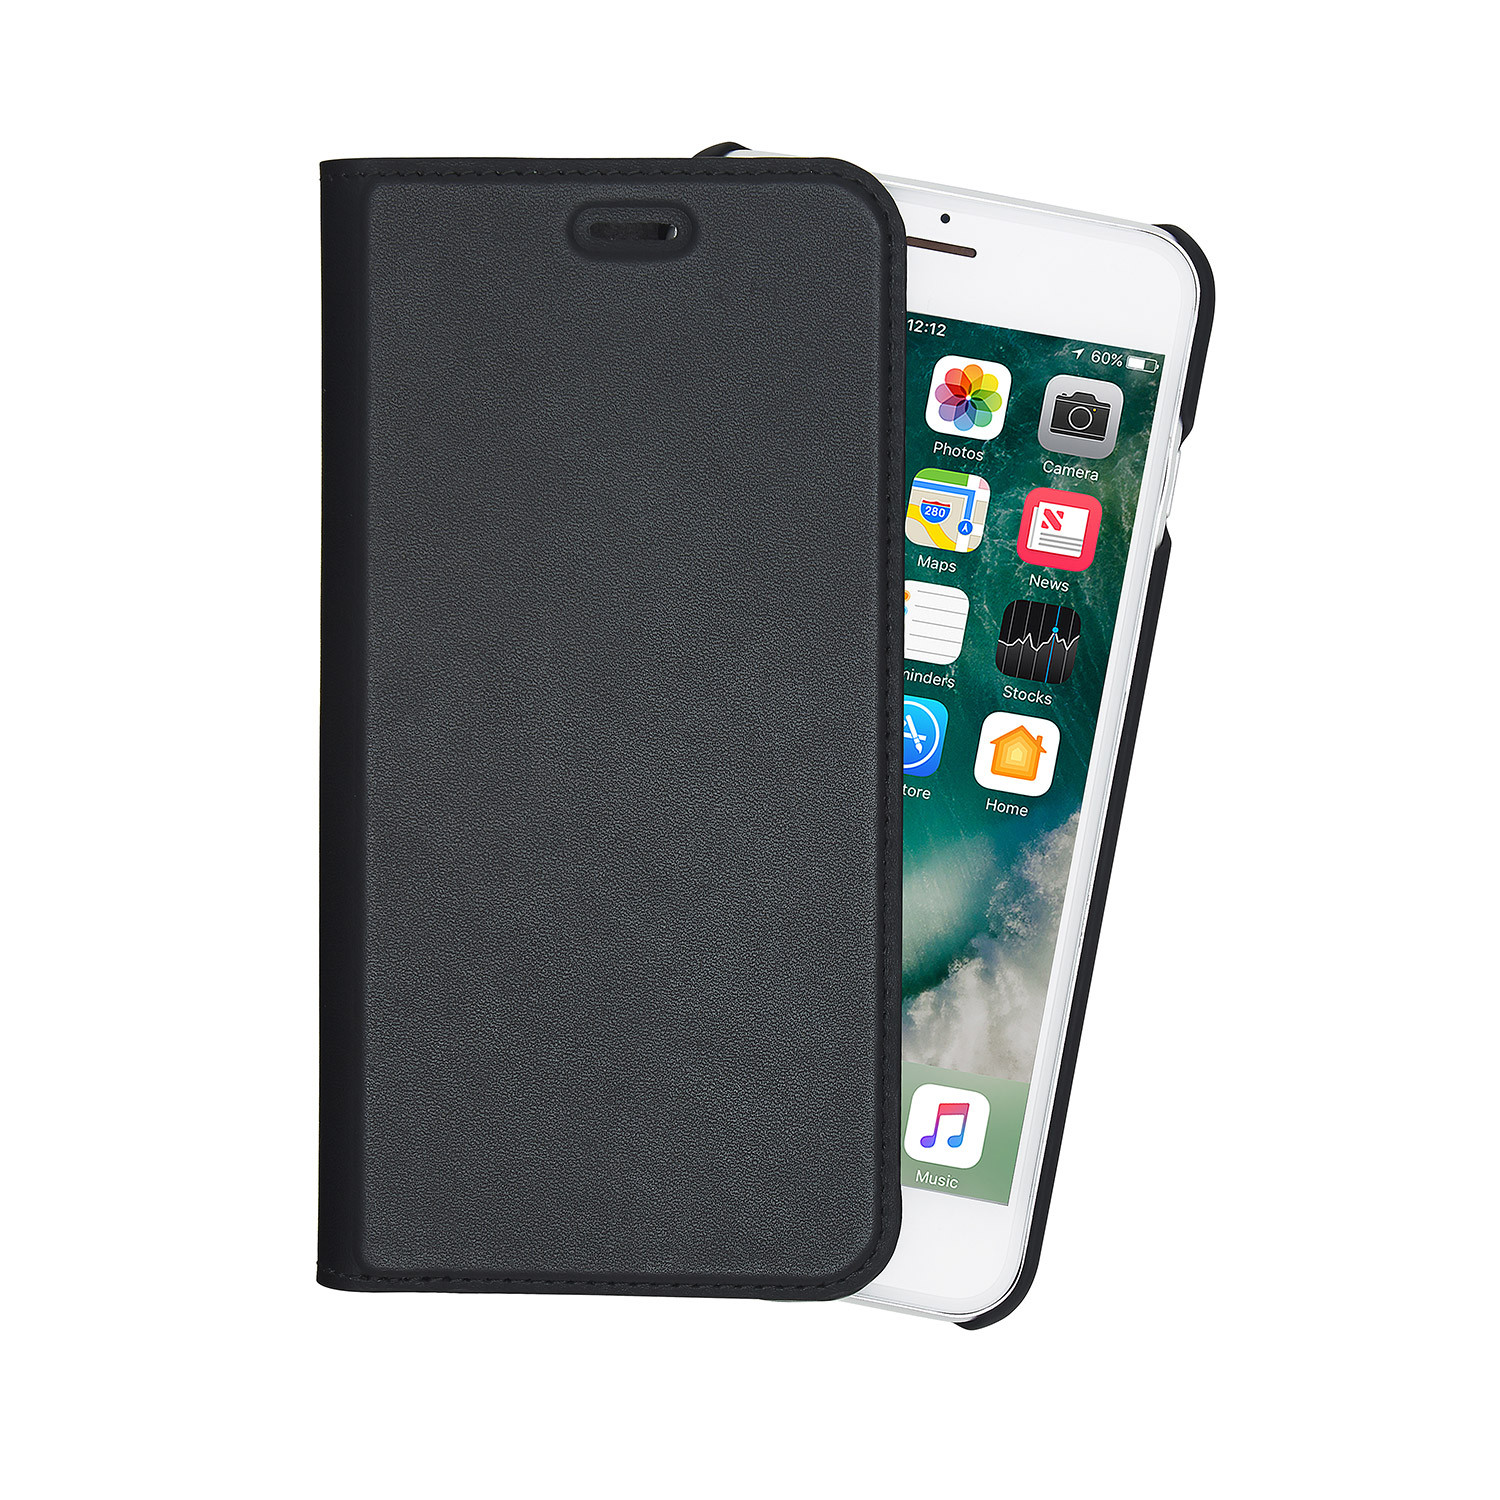 b35e265cbf iPhone 7 Plus / iPhone 6 Plus / iPhone 6S Plus Black Leather Wallet ...